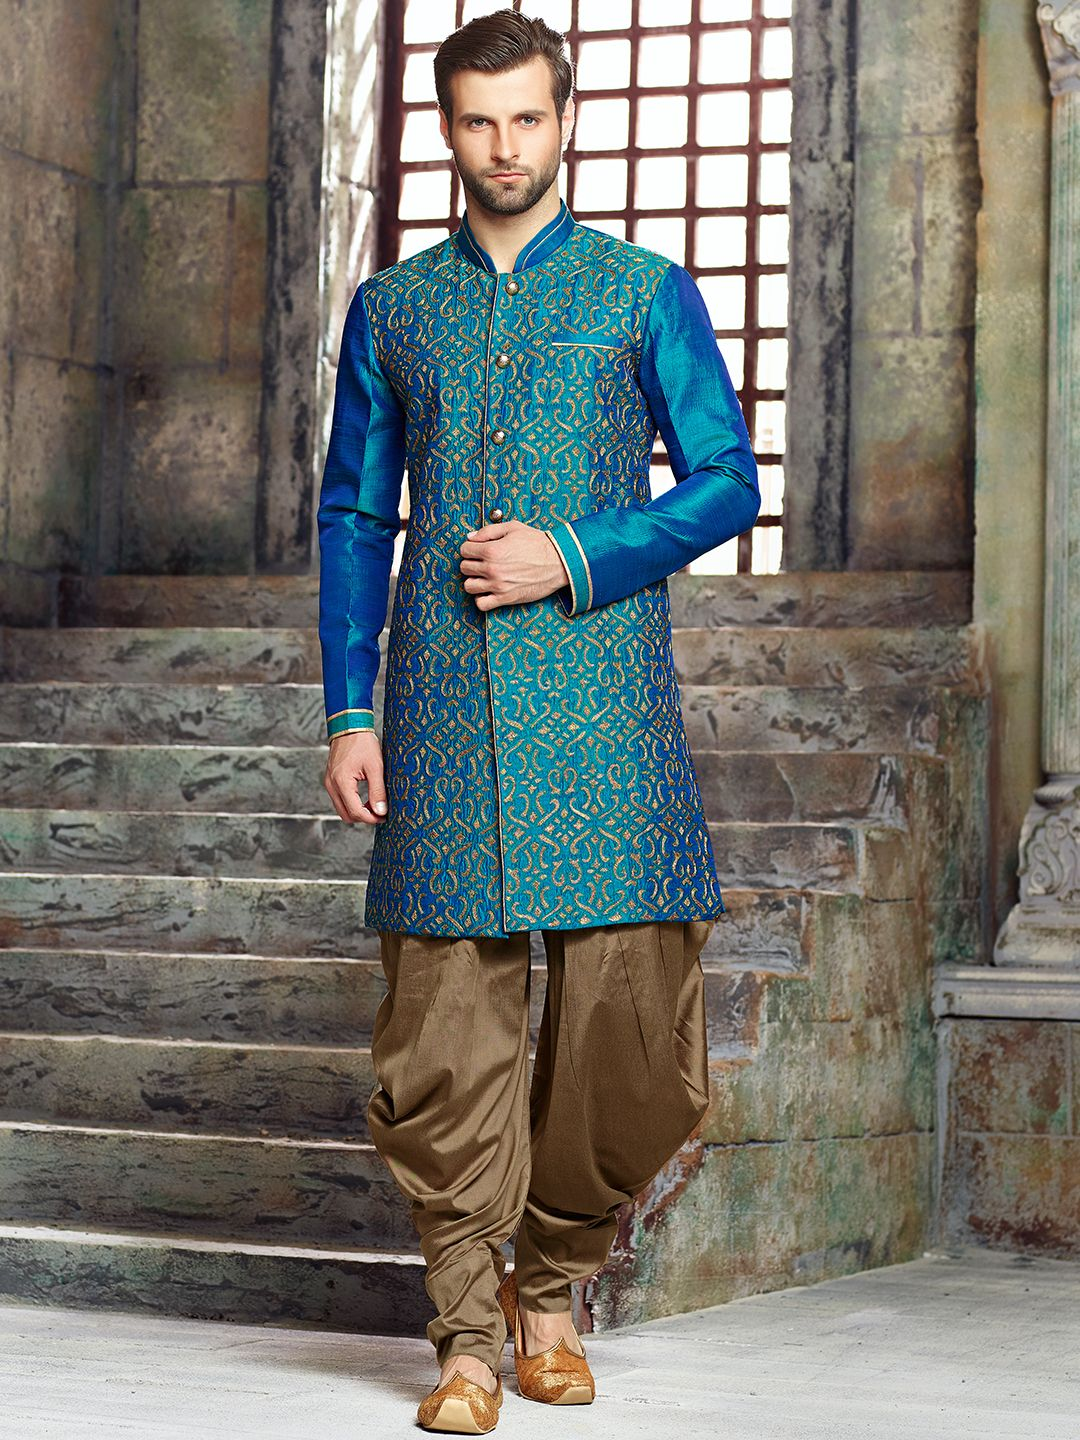 Silk Blue Wedding Wear Kurta Suit | Buy Men\'s Kurta Suits online at ...